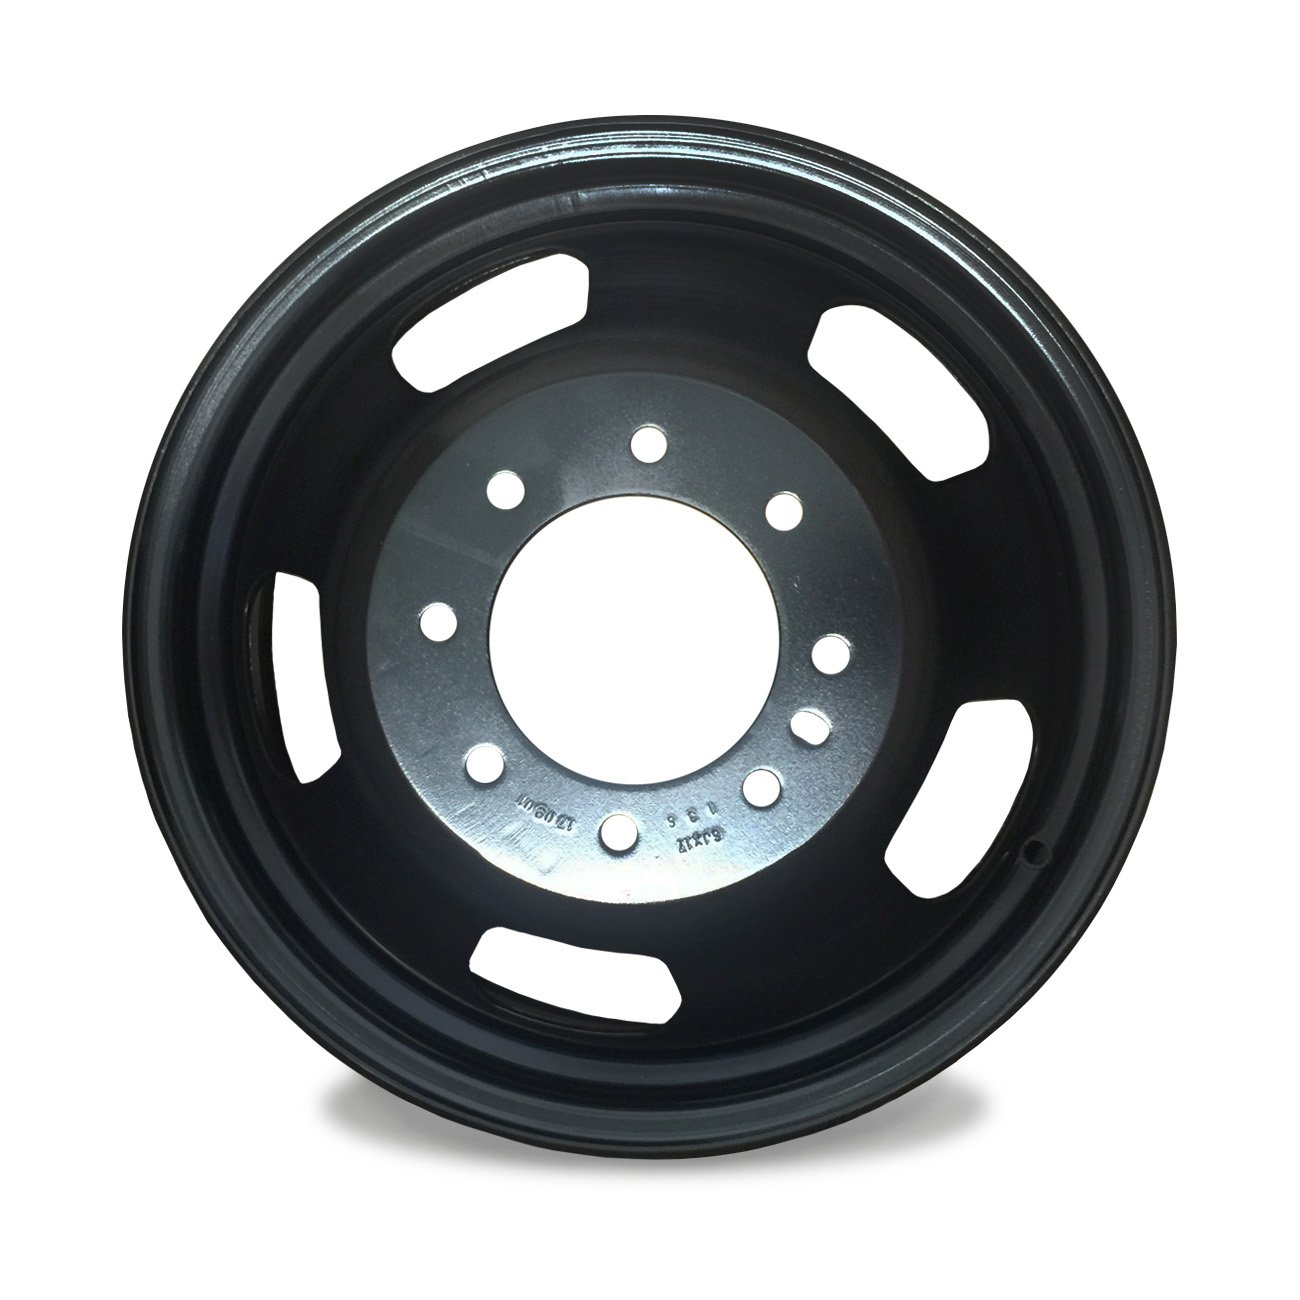 NEW 17''X6'' DODGE RAM 3500 SUPER DUTY DUALLY DRW OEM Quality Steel Wheel Rim 8 Lug 2191 2003 2004 2005 2006 2007 2008 2009 2010 2012 2013 2014 2015 2016 2017